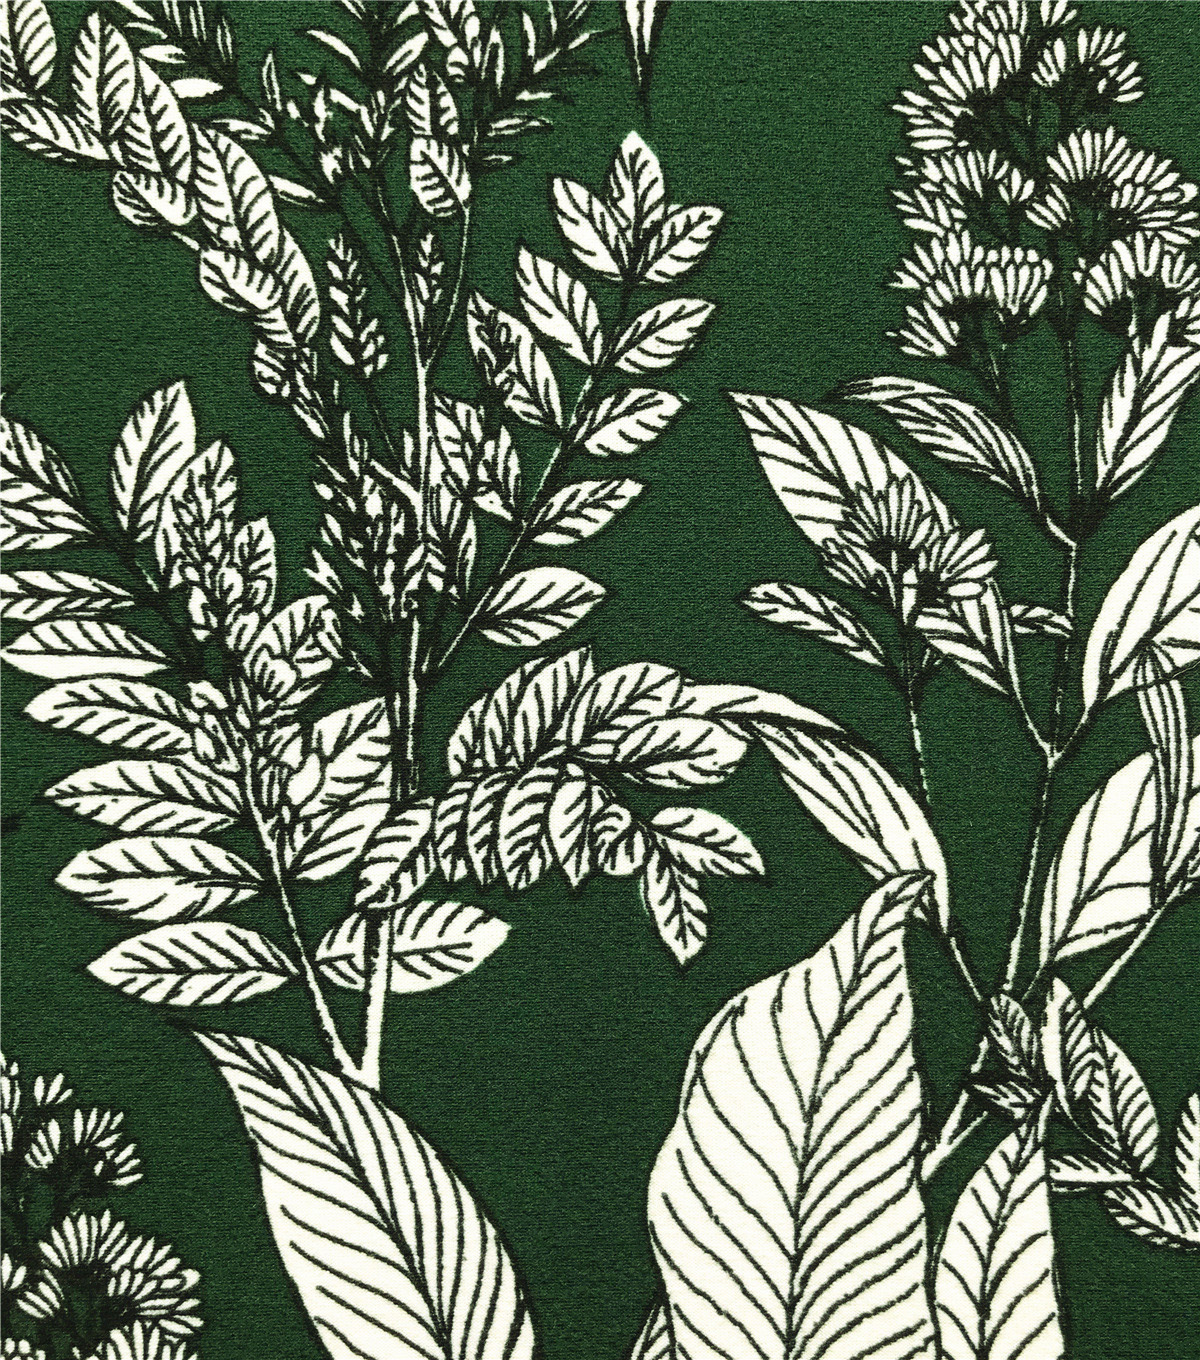 Knit Prints Double Brushed Fabric-Dark Green Leaf